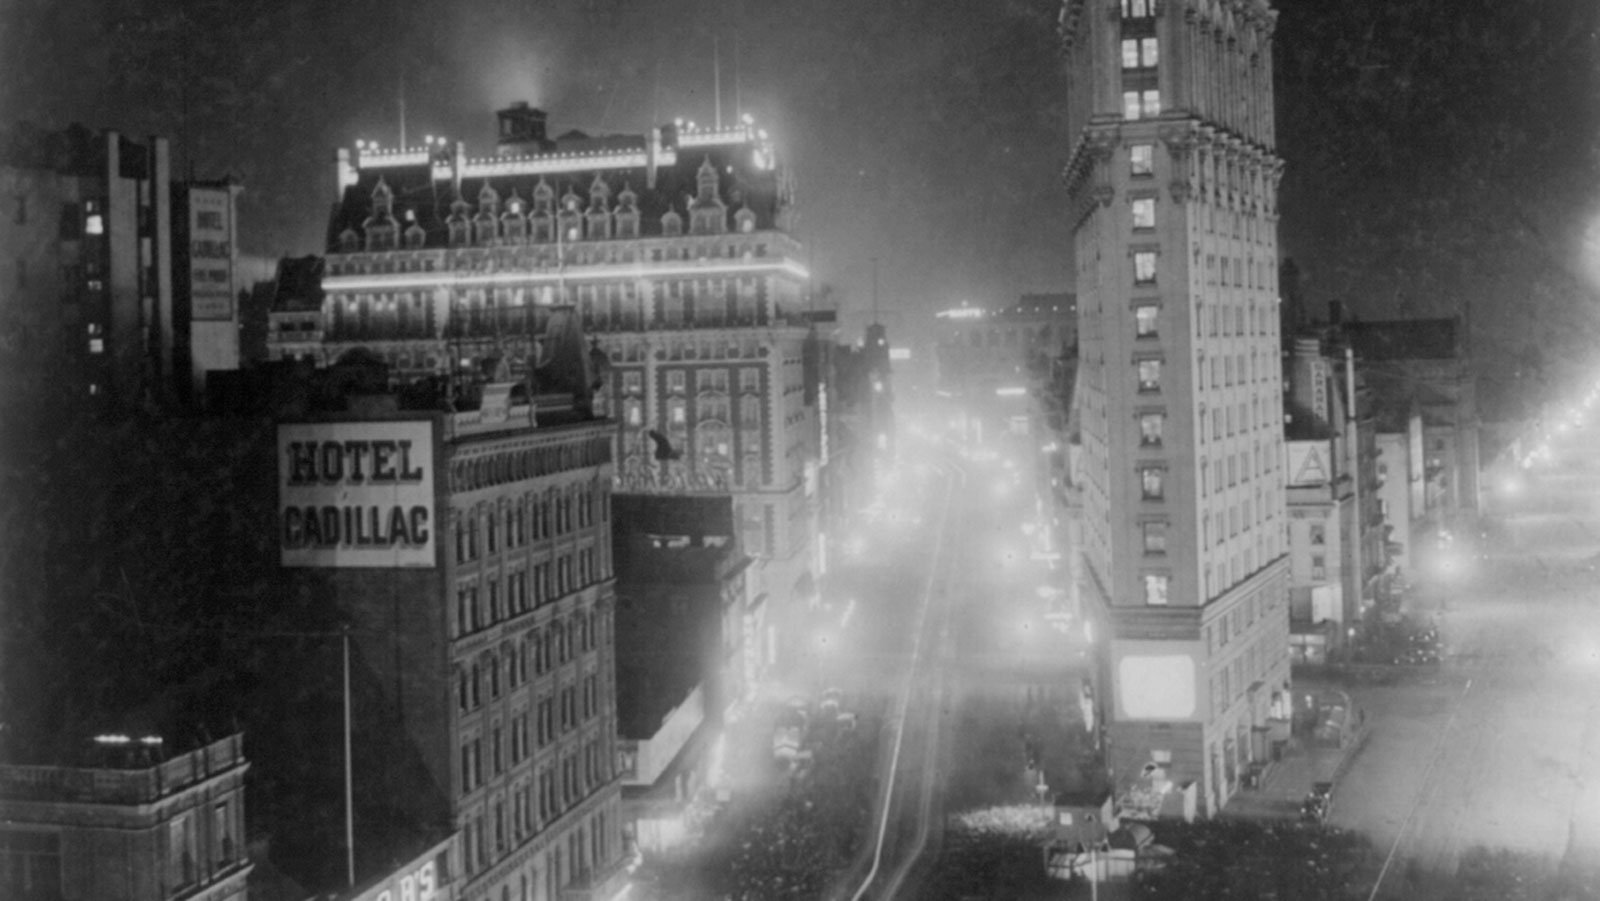 Broadway and West 42nd Street at night, with crowds gathered to see films projected outdoors, circa 1908